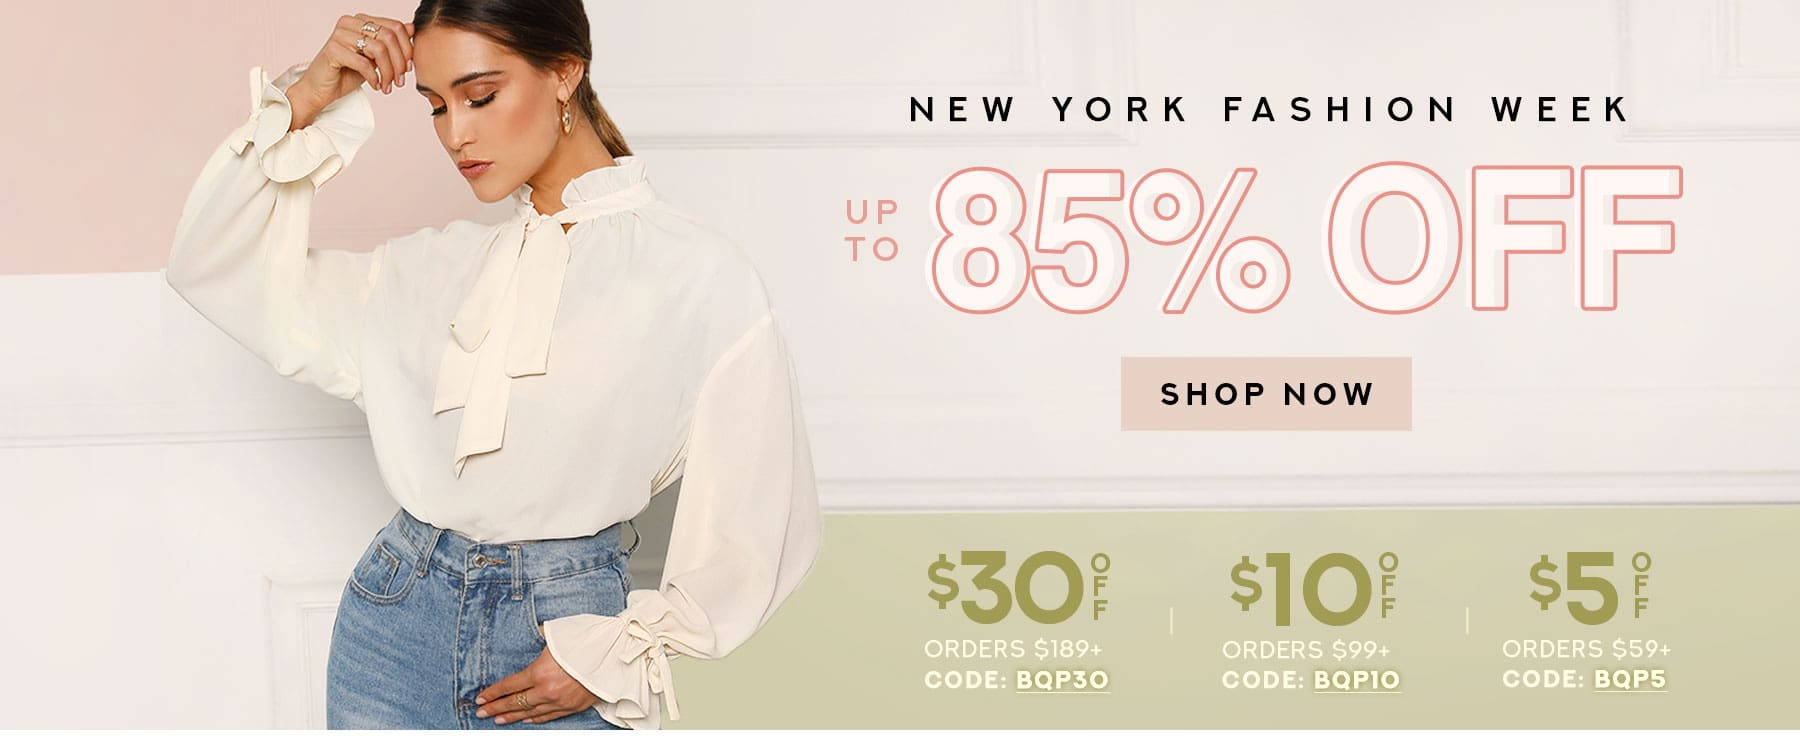 Shein Contemporary Women S Fashion At Affordable Prices